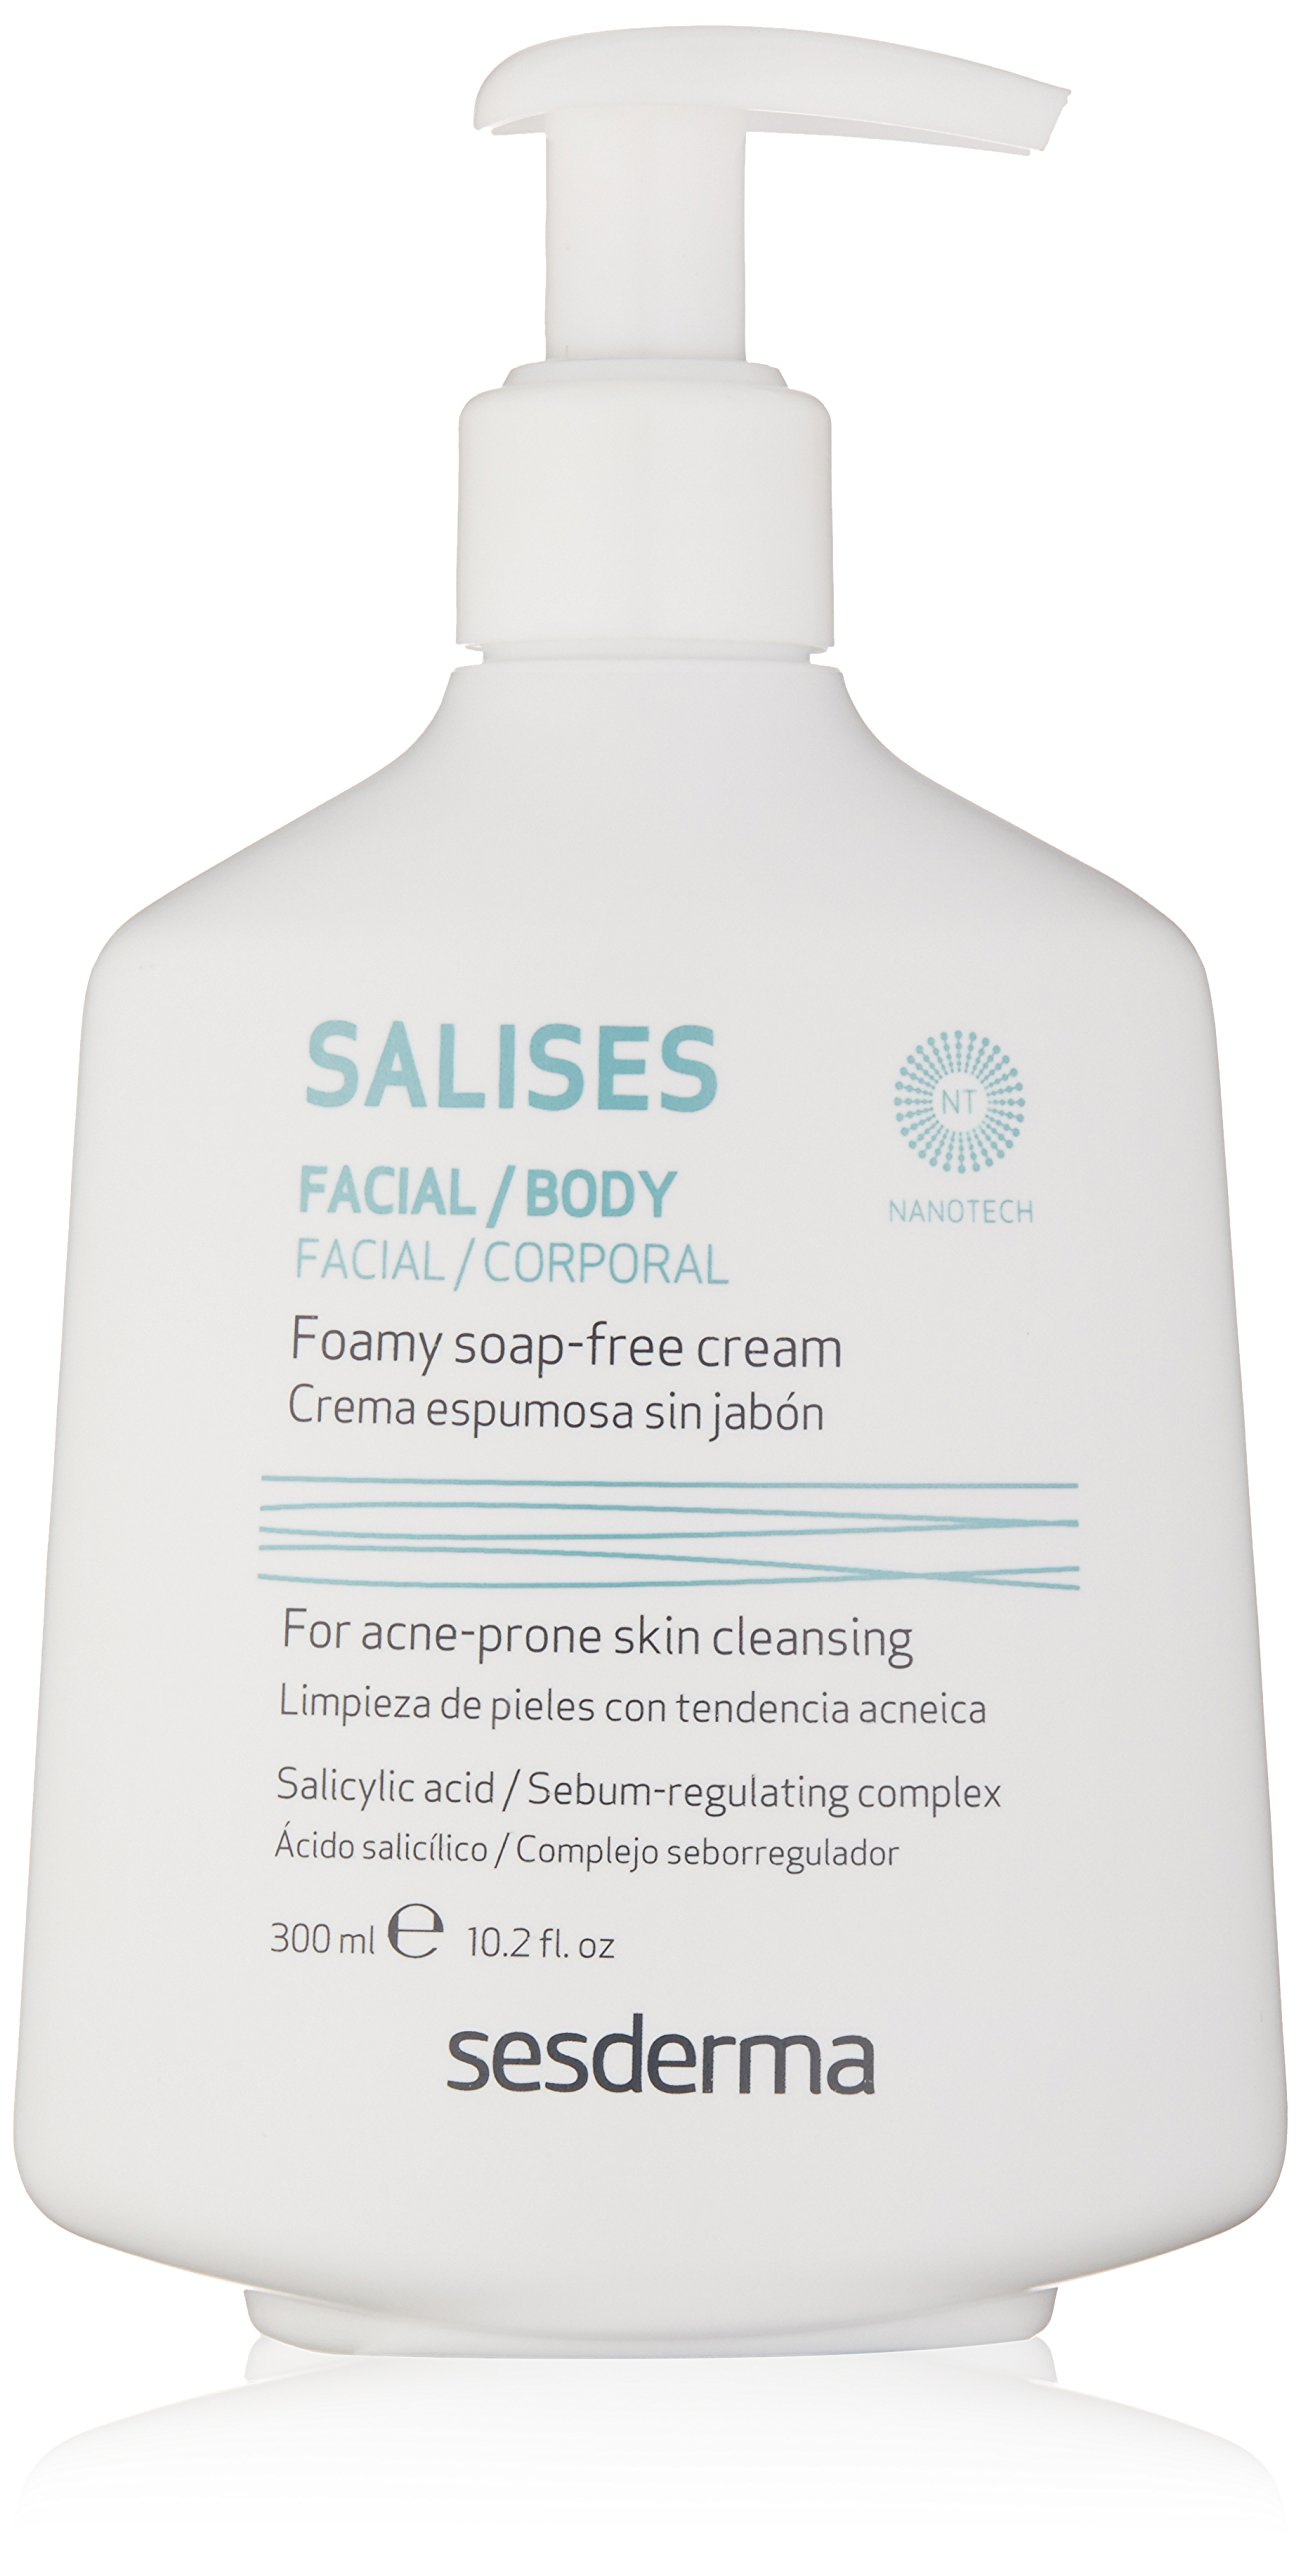 Sesderma SALISES Foamy Soap-free Cream, 10.2 Fl Oz